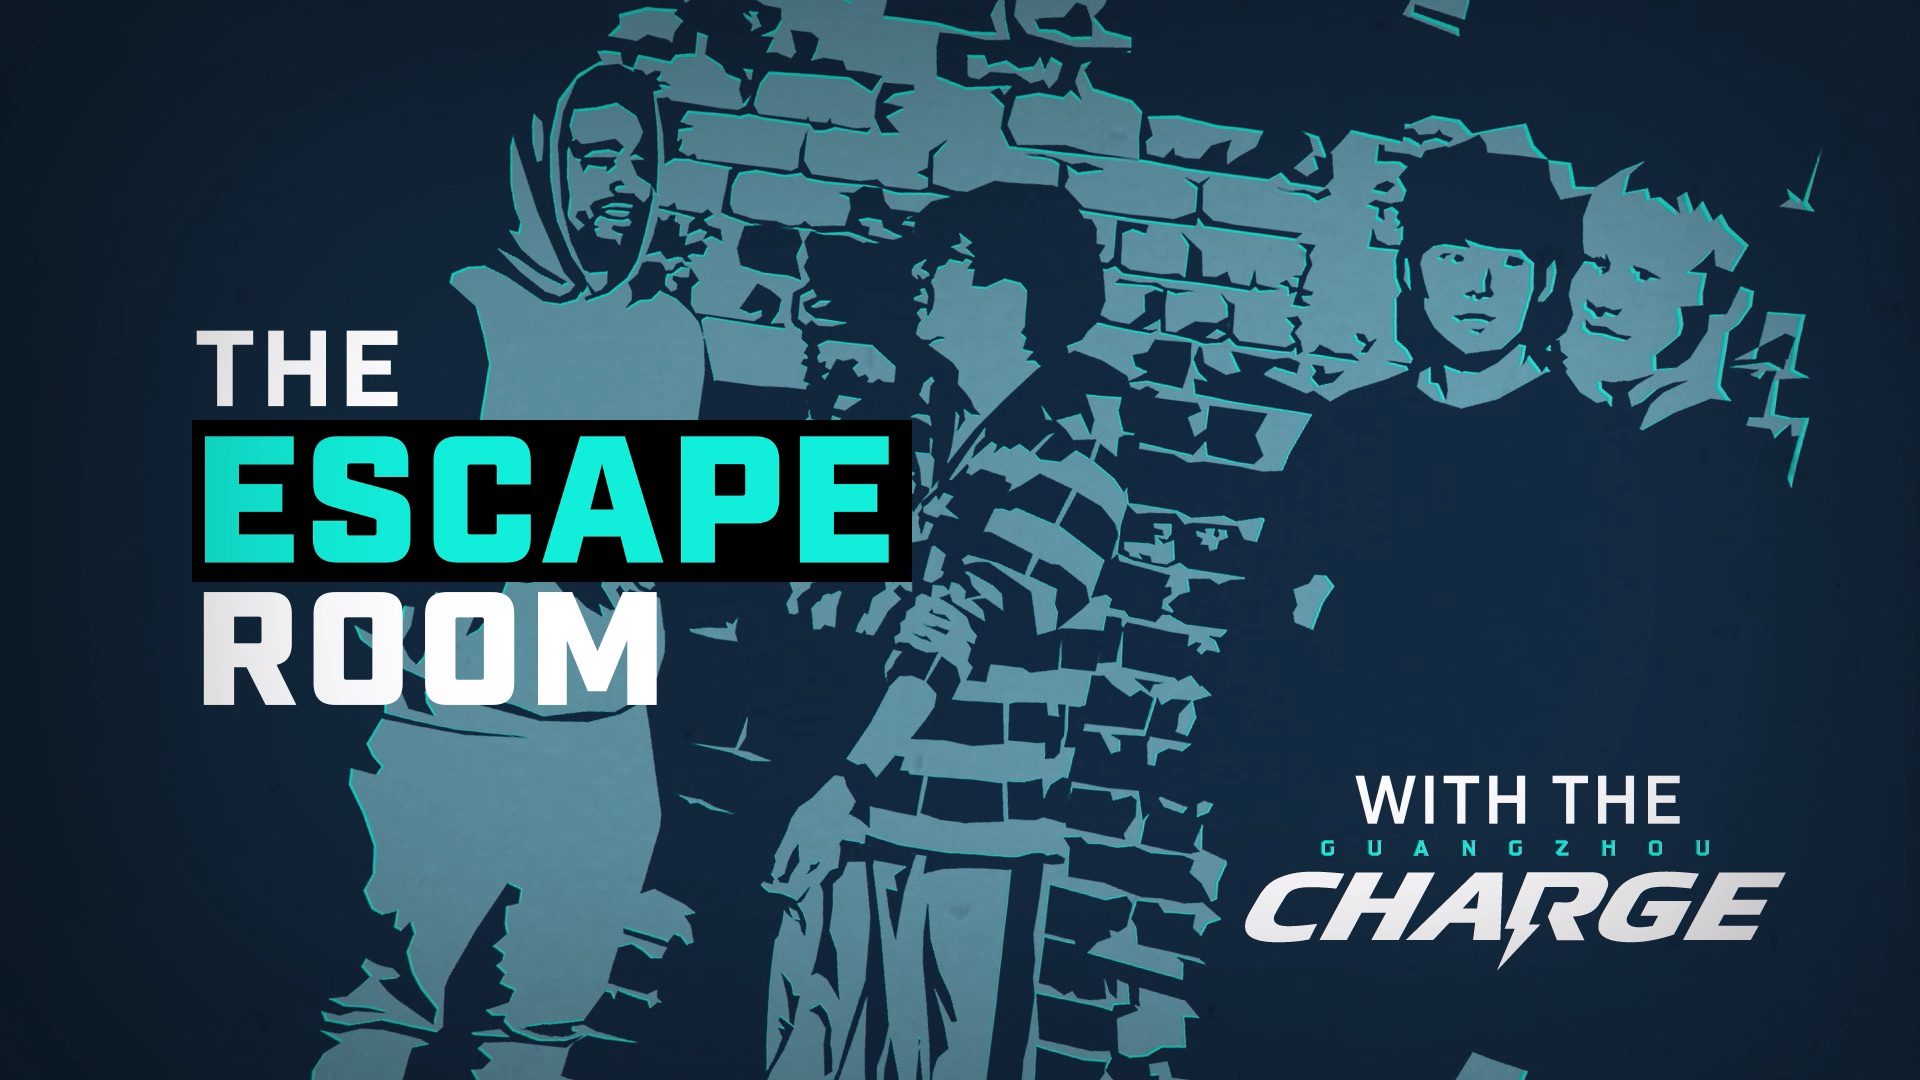 The Escape Room with the Guangzhou Charge